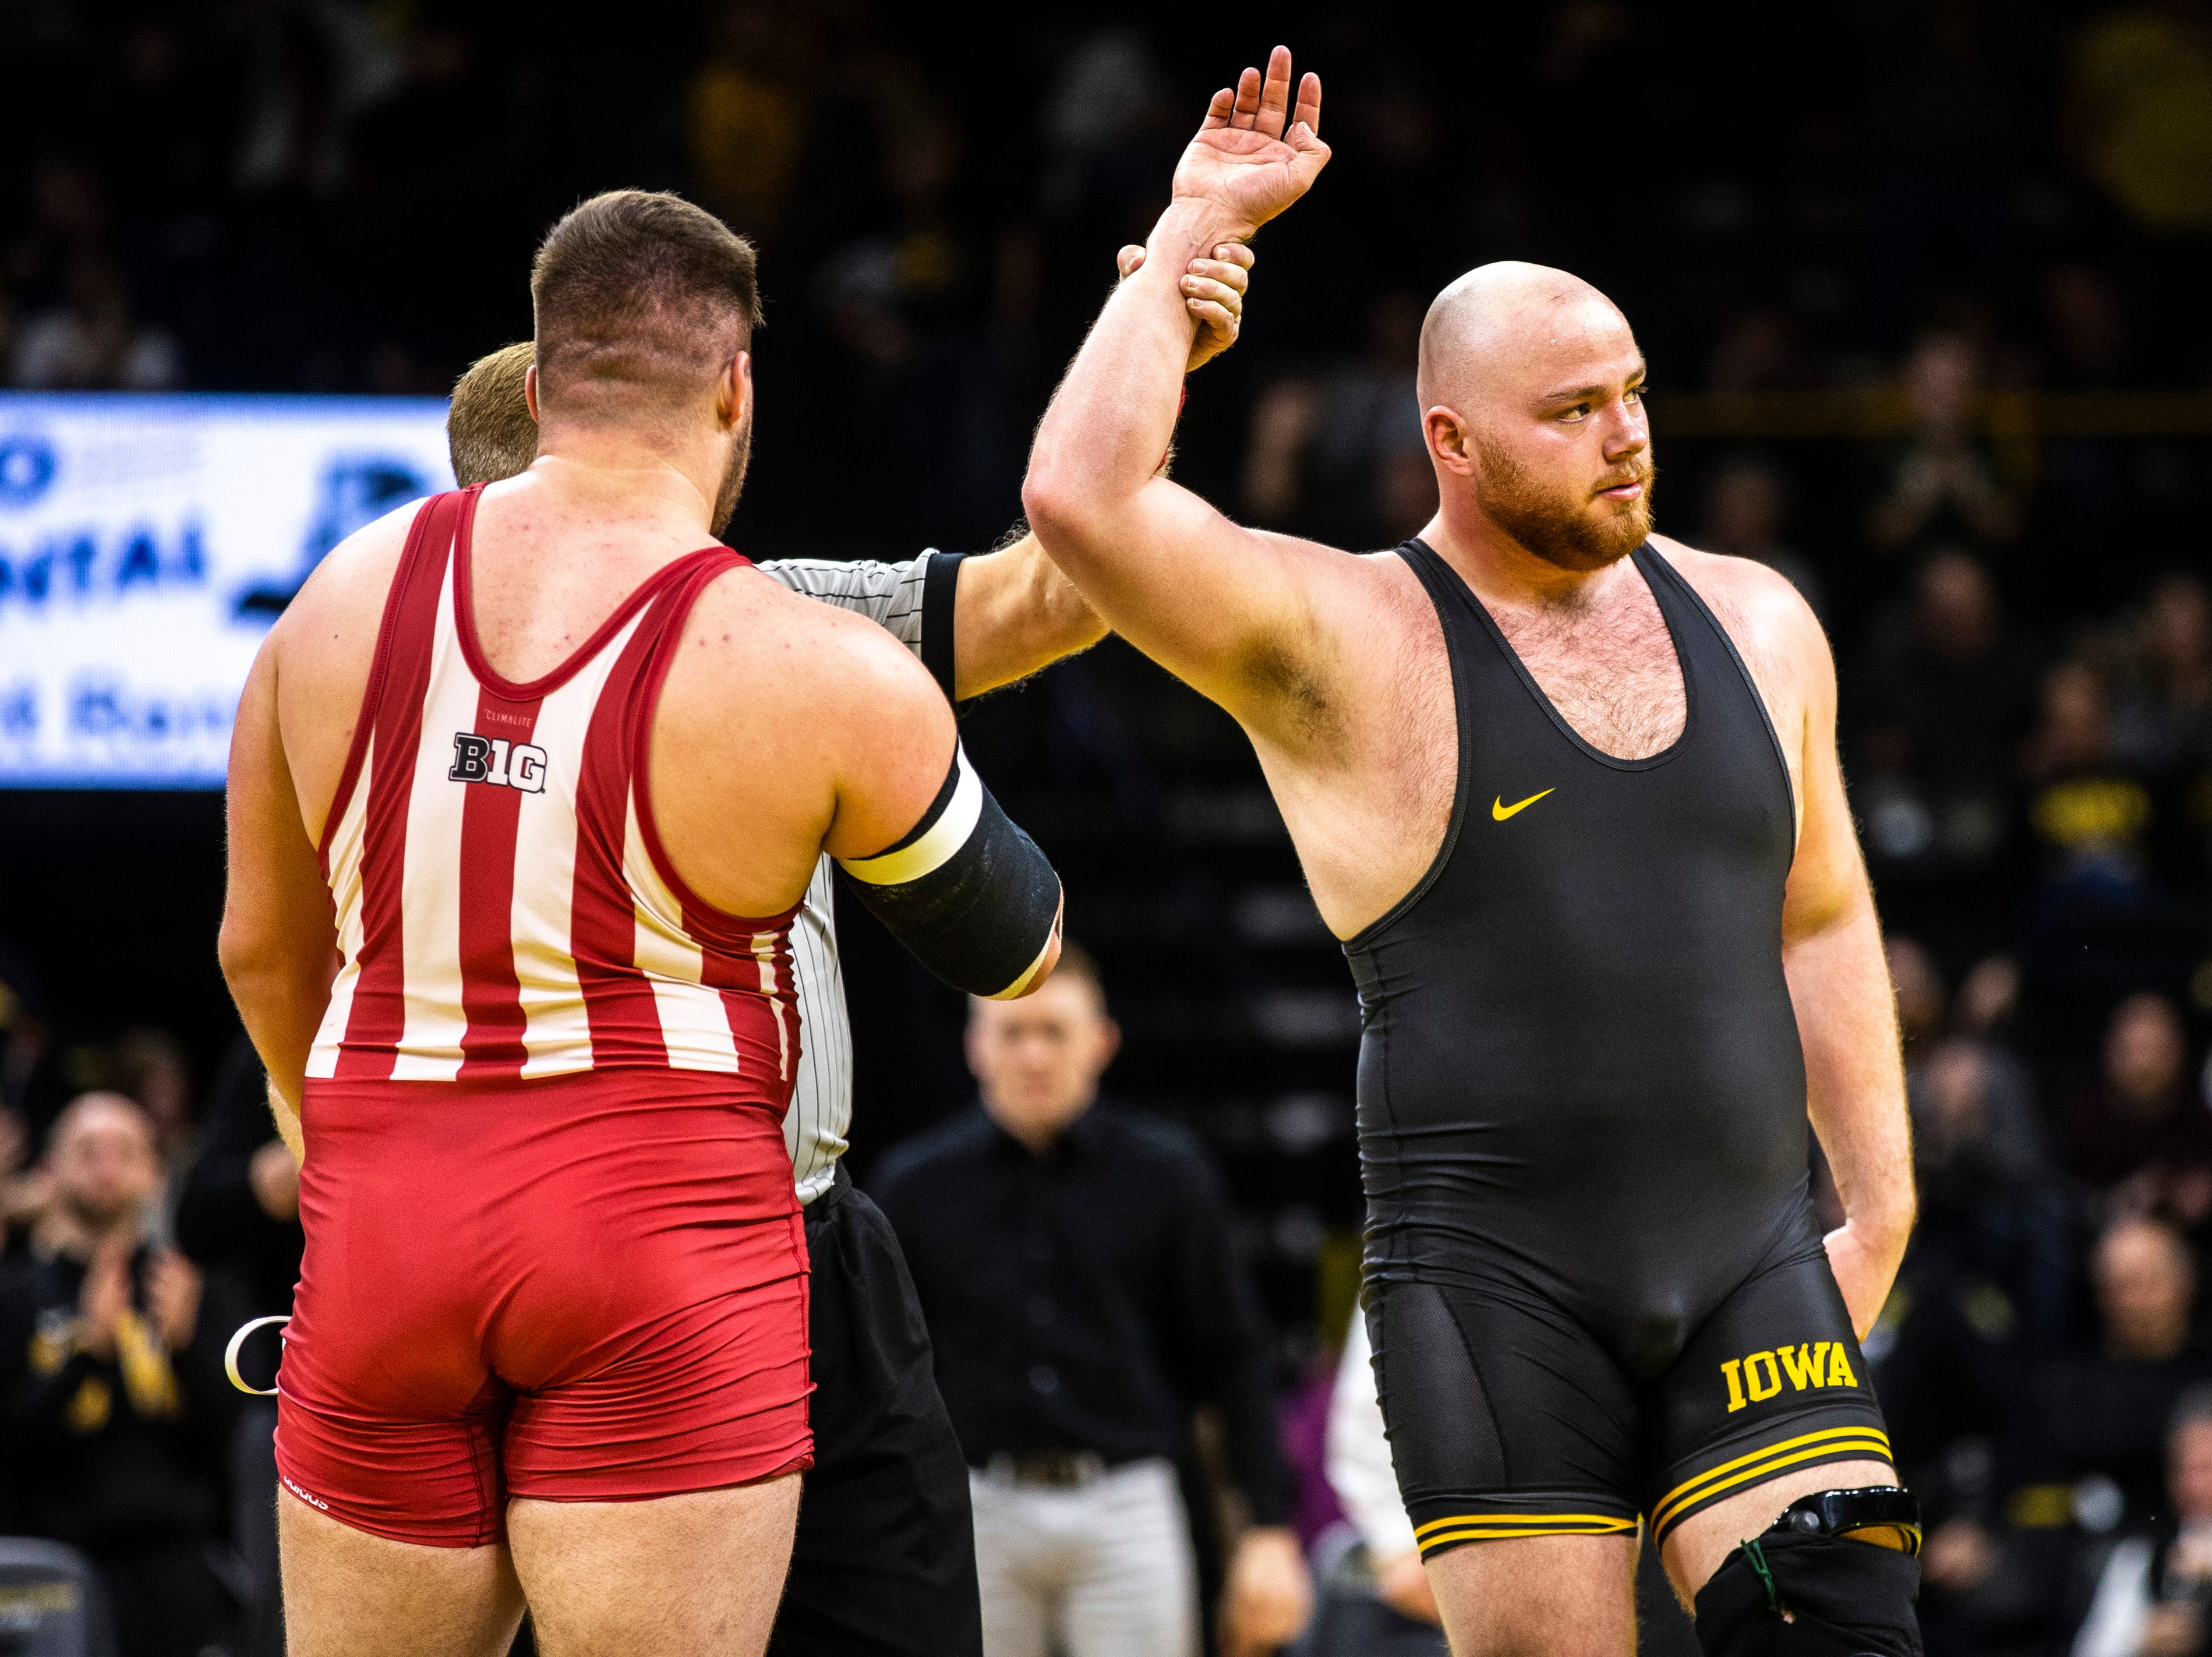 Iowa's Sam Stoll, right, has his hand raised after scoring a major decision over Indiana's Fletcher Miller at 285 during a NCAA Big Ten Conference wrestling dual on Friday, Feb. 15, 2019 at Carver-Hawkeye Arena in Iowa City, Iowa.